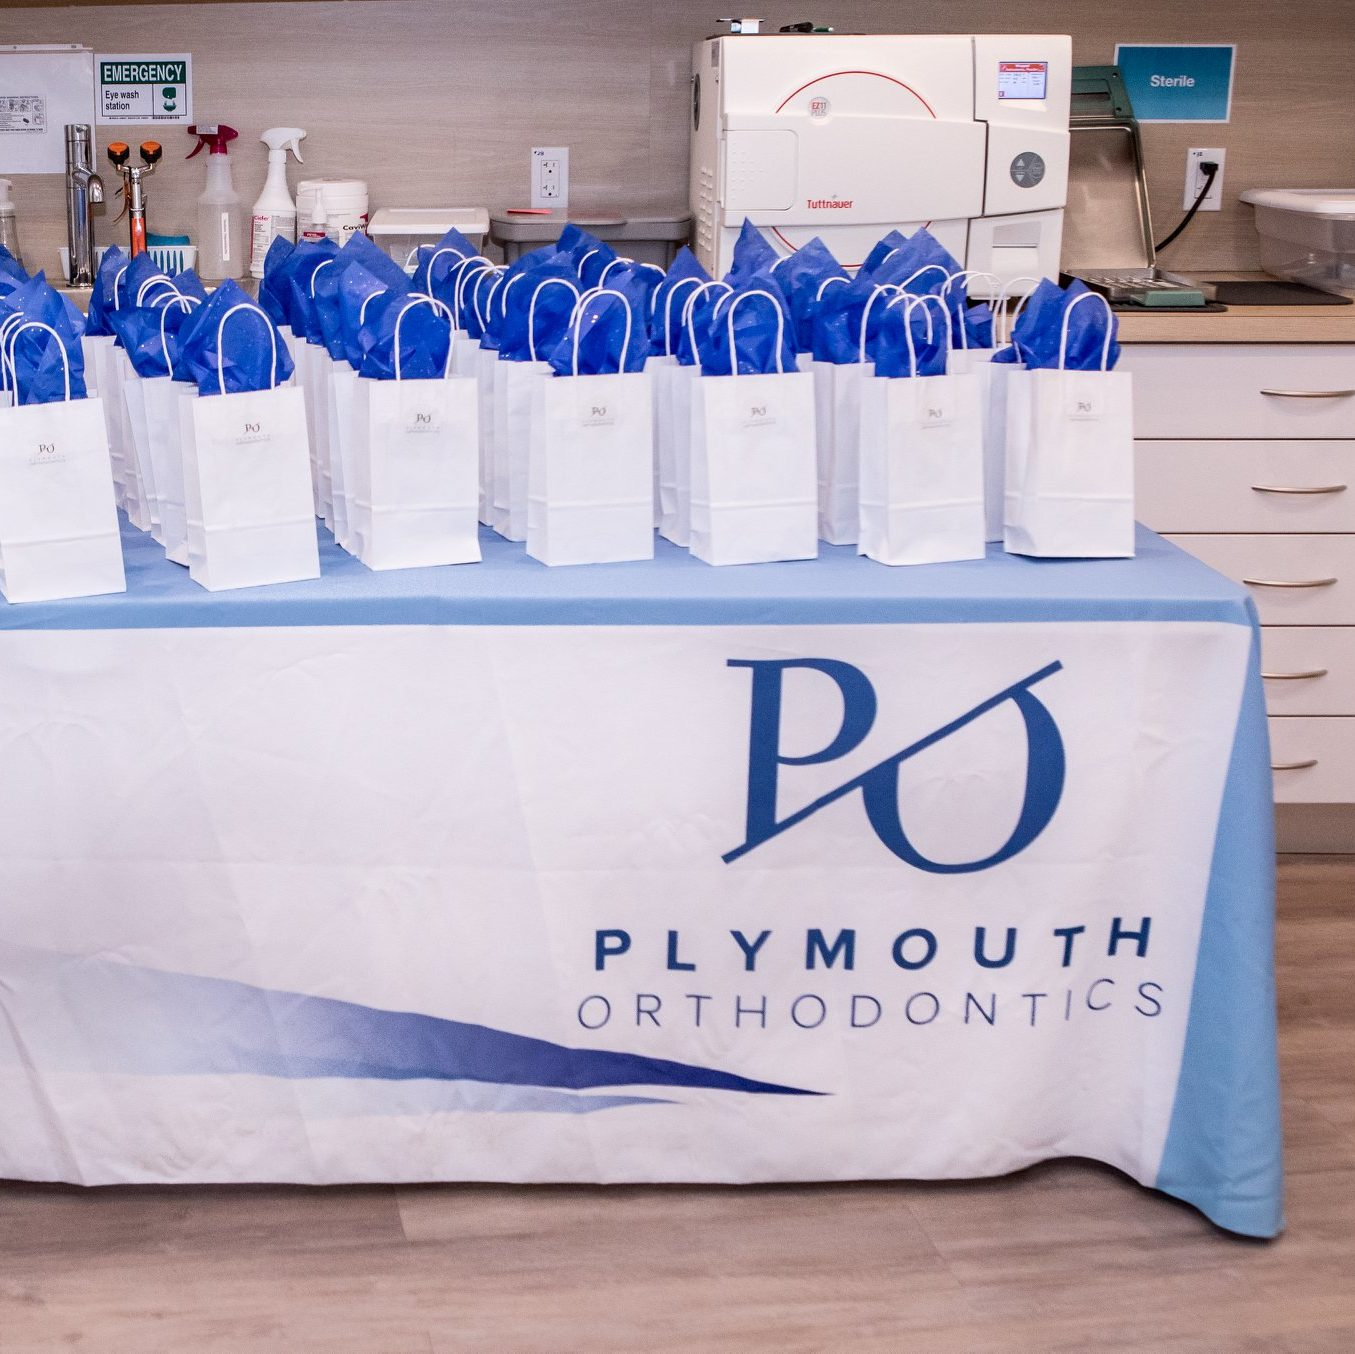 Celebrating Plymouth Orthodontics' First Anniversary!